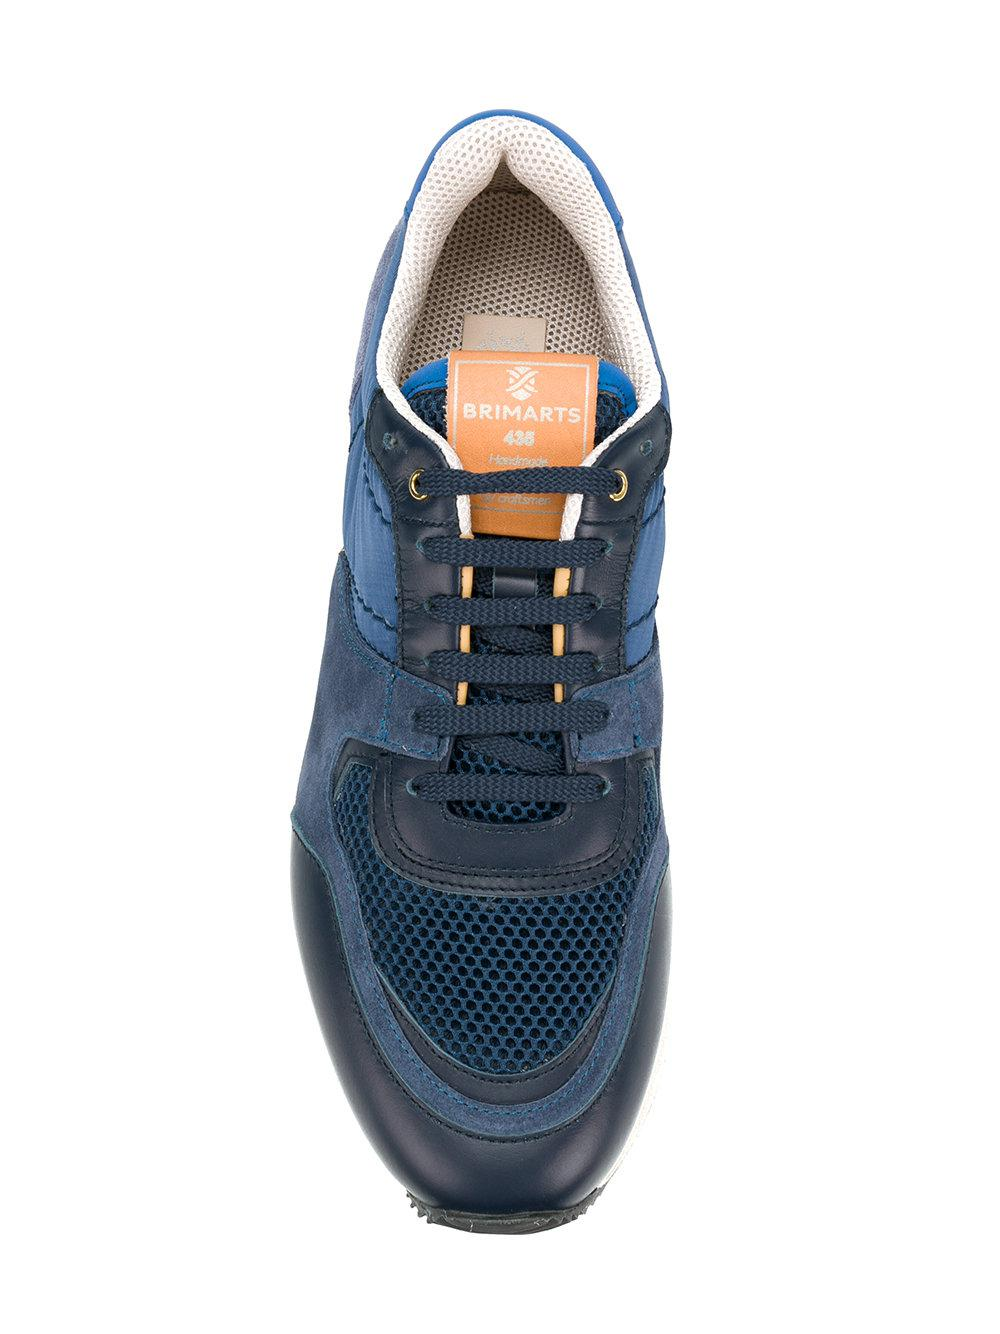 Brimarts Leather Lace-up Sneakers in Blue